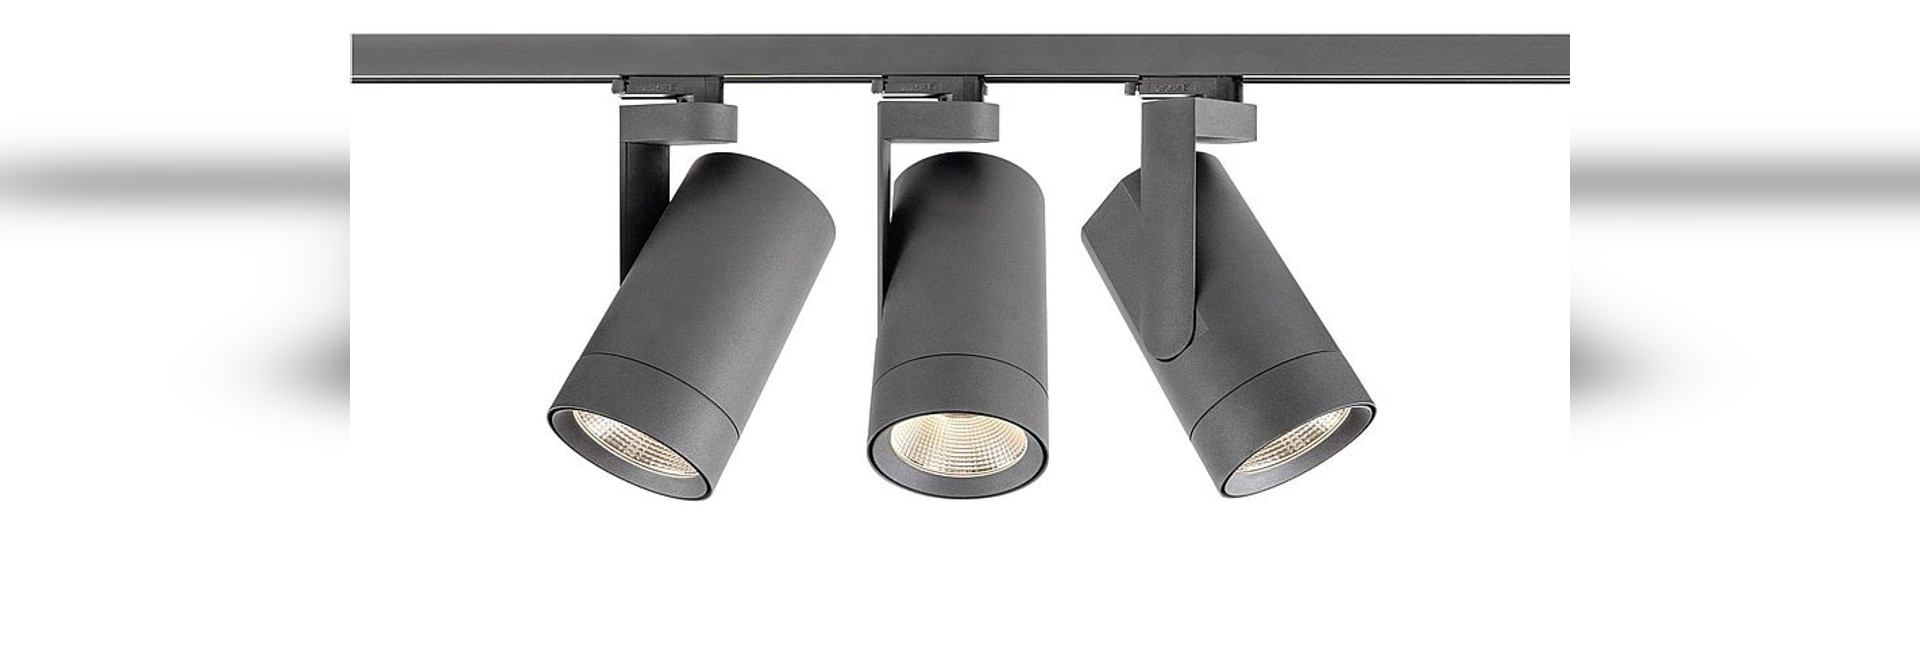 view head larger photo lighting htm p led heads fixtures types residential track